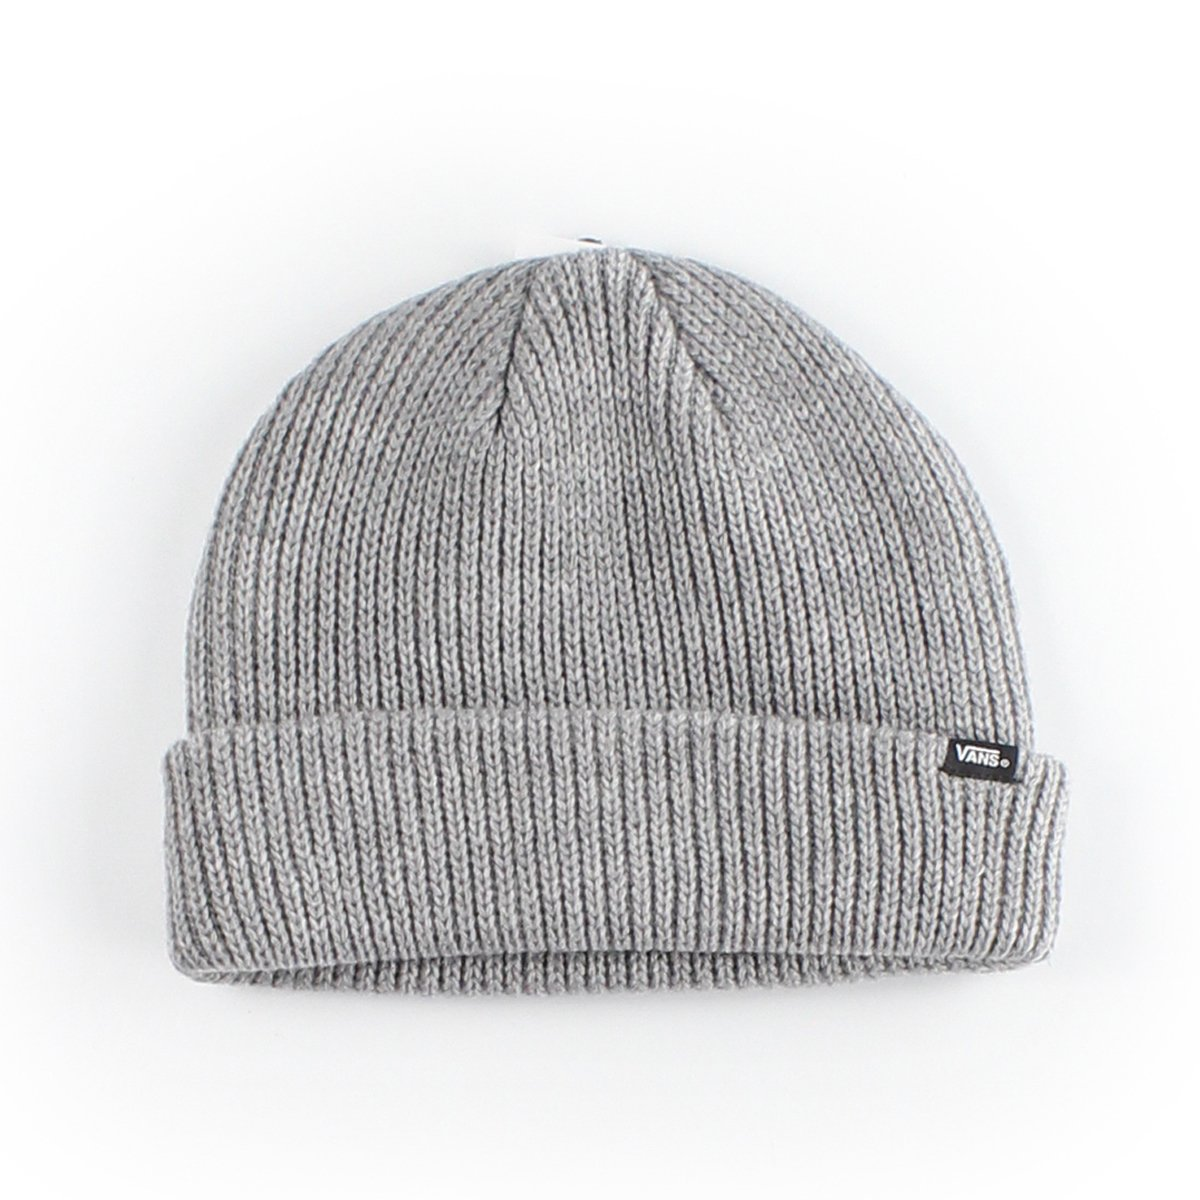 TOUCA VANS CORE BASICS BEANIE HEATHER GREY